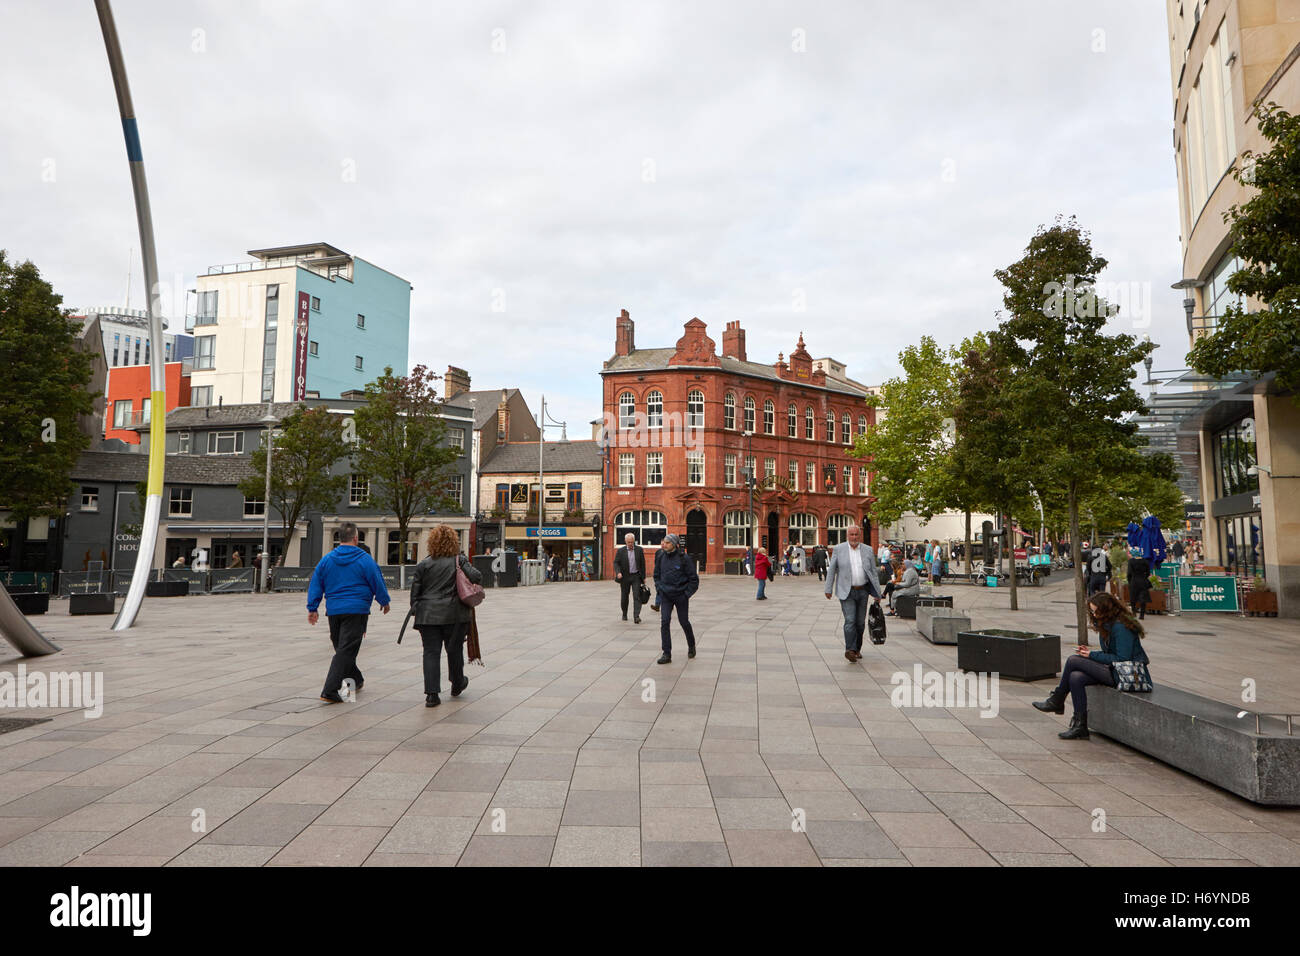 st davids dewi sant development the hayes Cardiff Wales United Kingdom - Stock Image